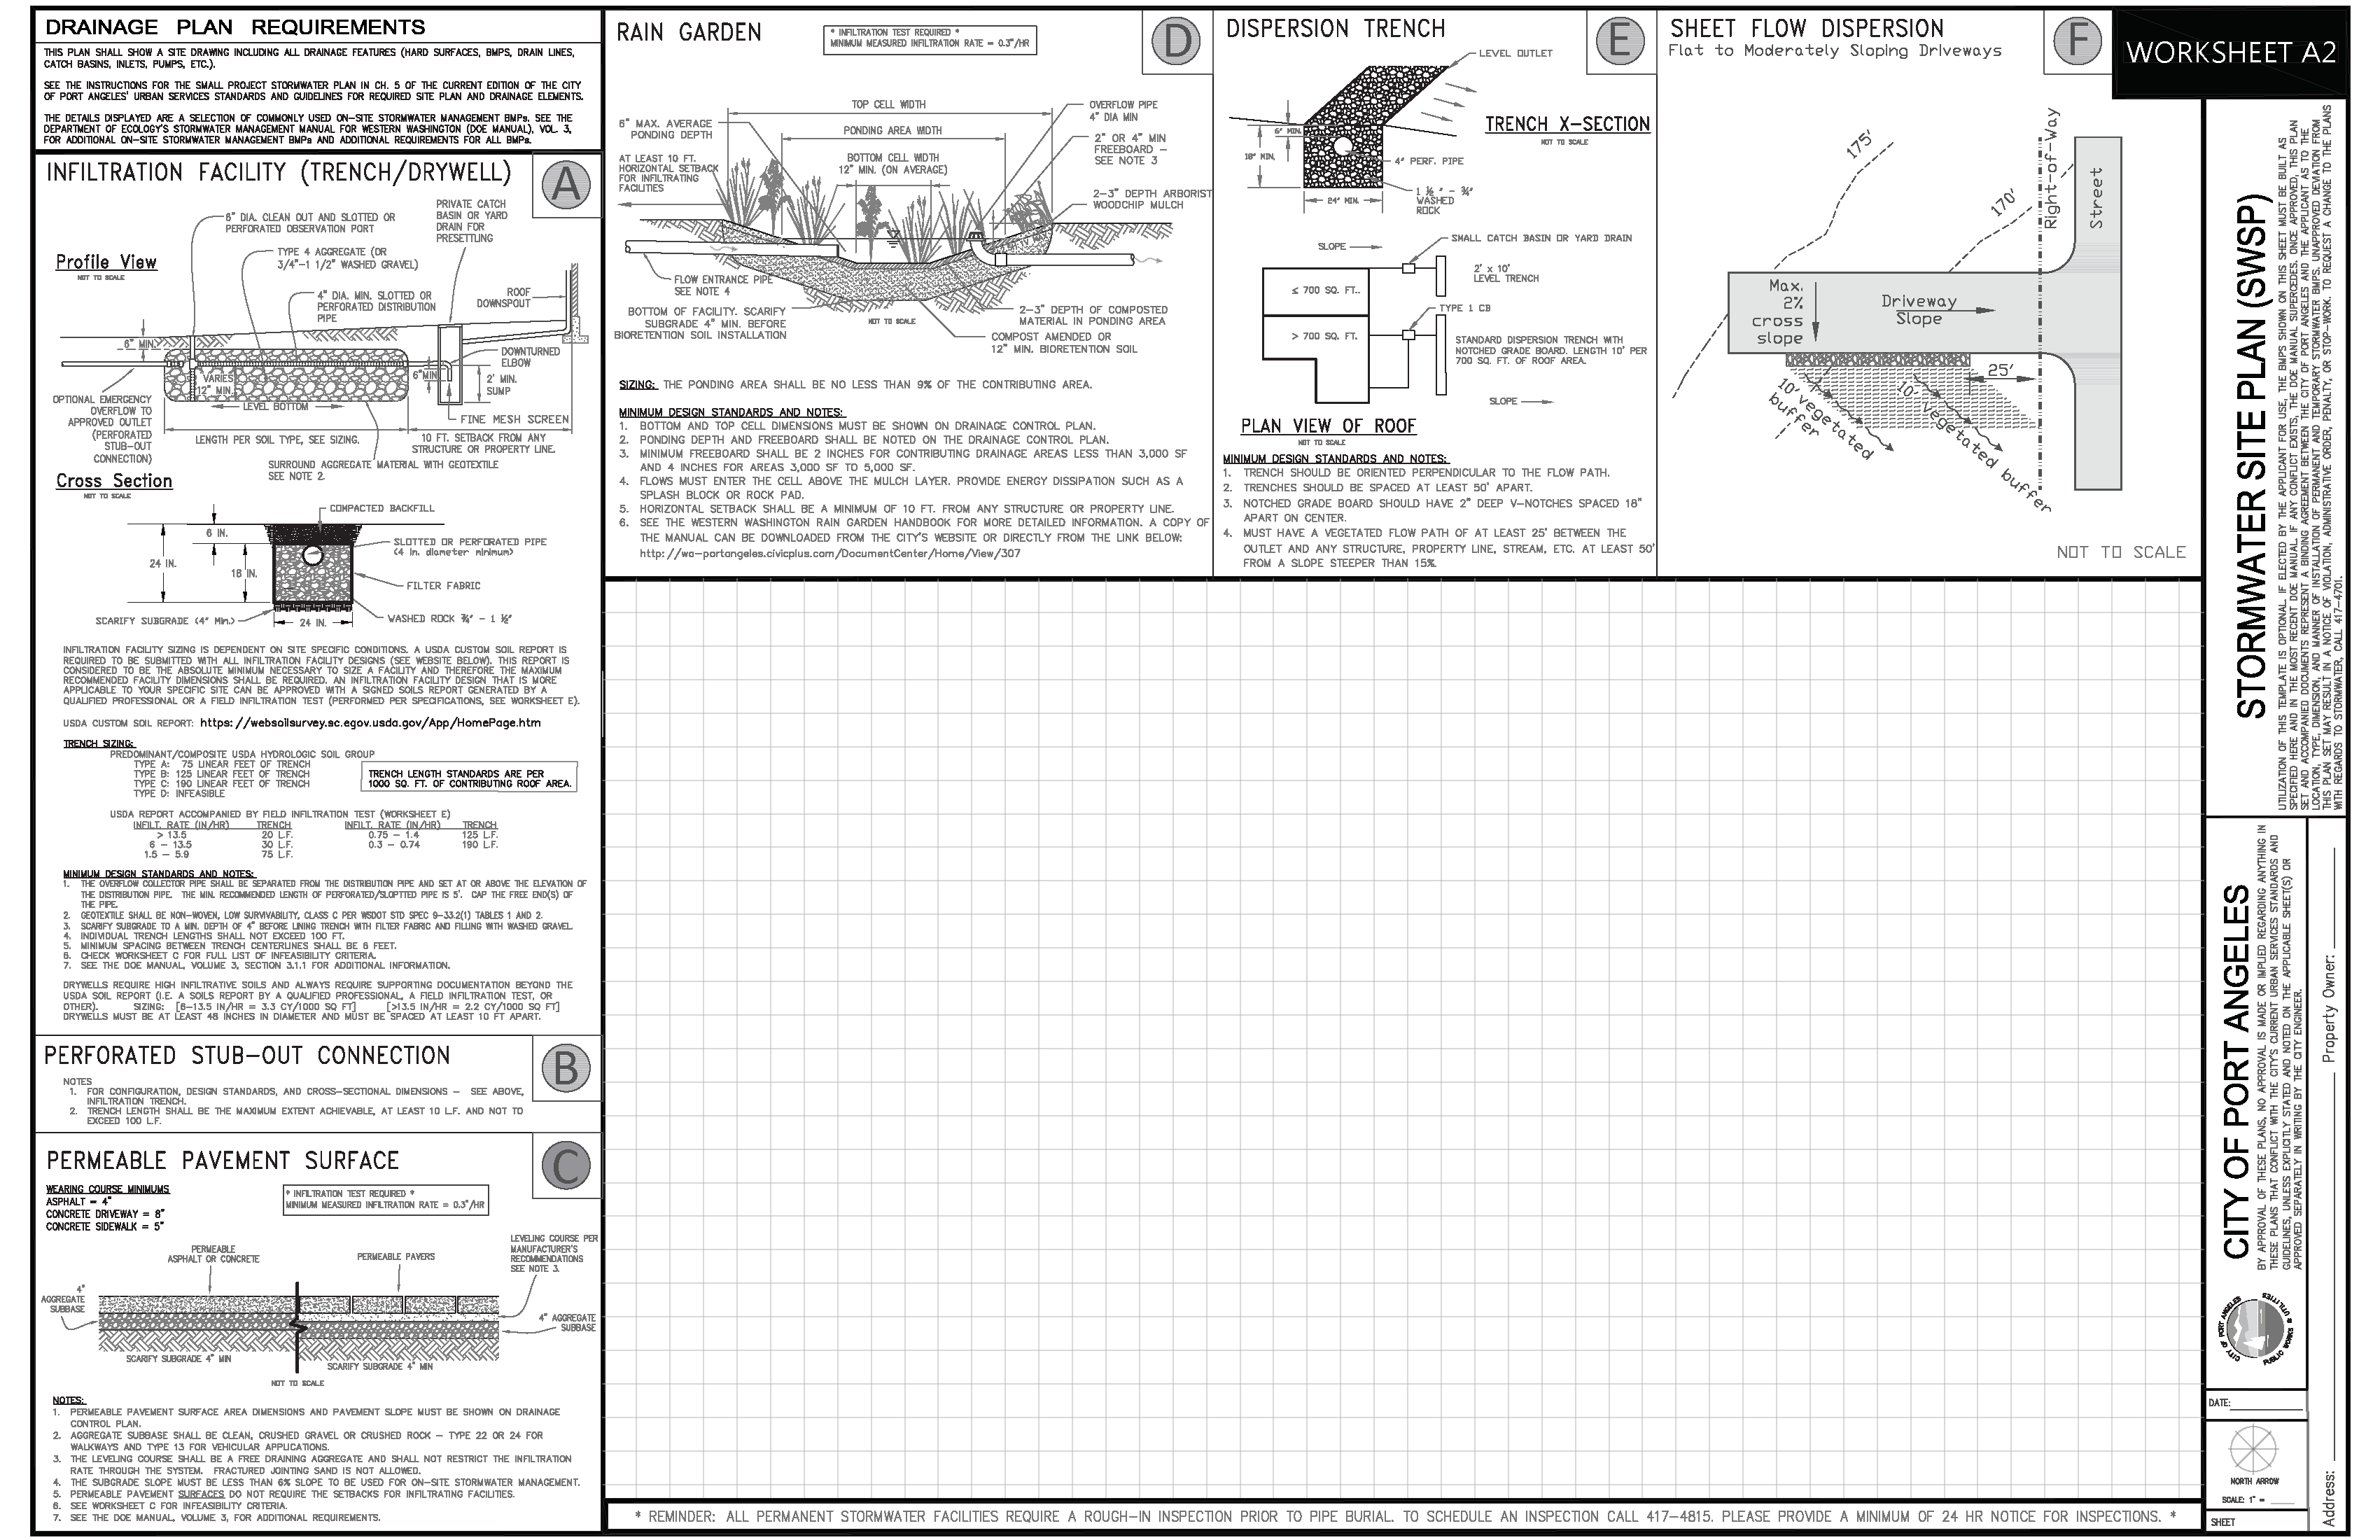 Worksheet A 2 Stormwater SITE PLAN